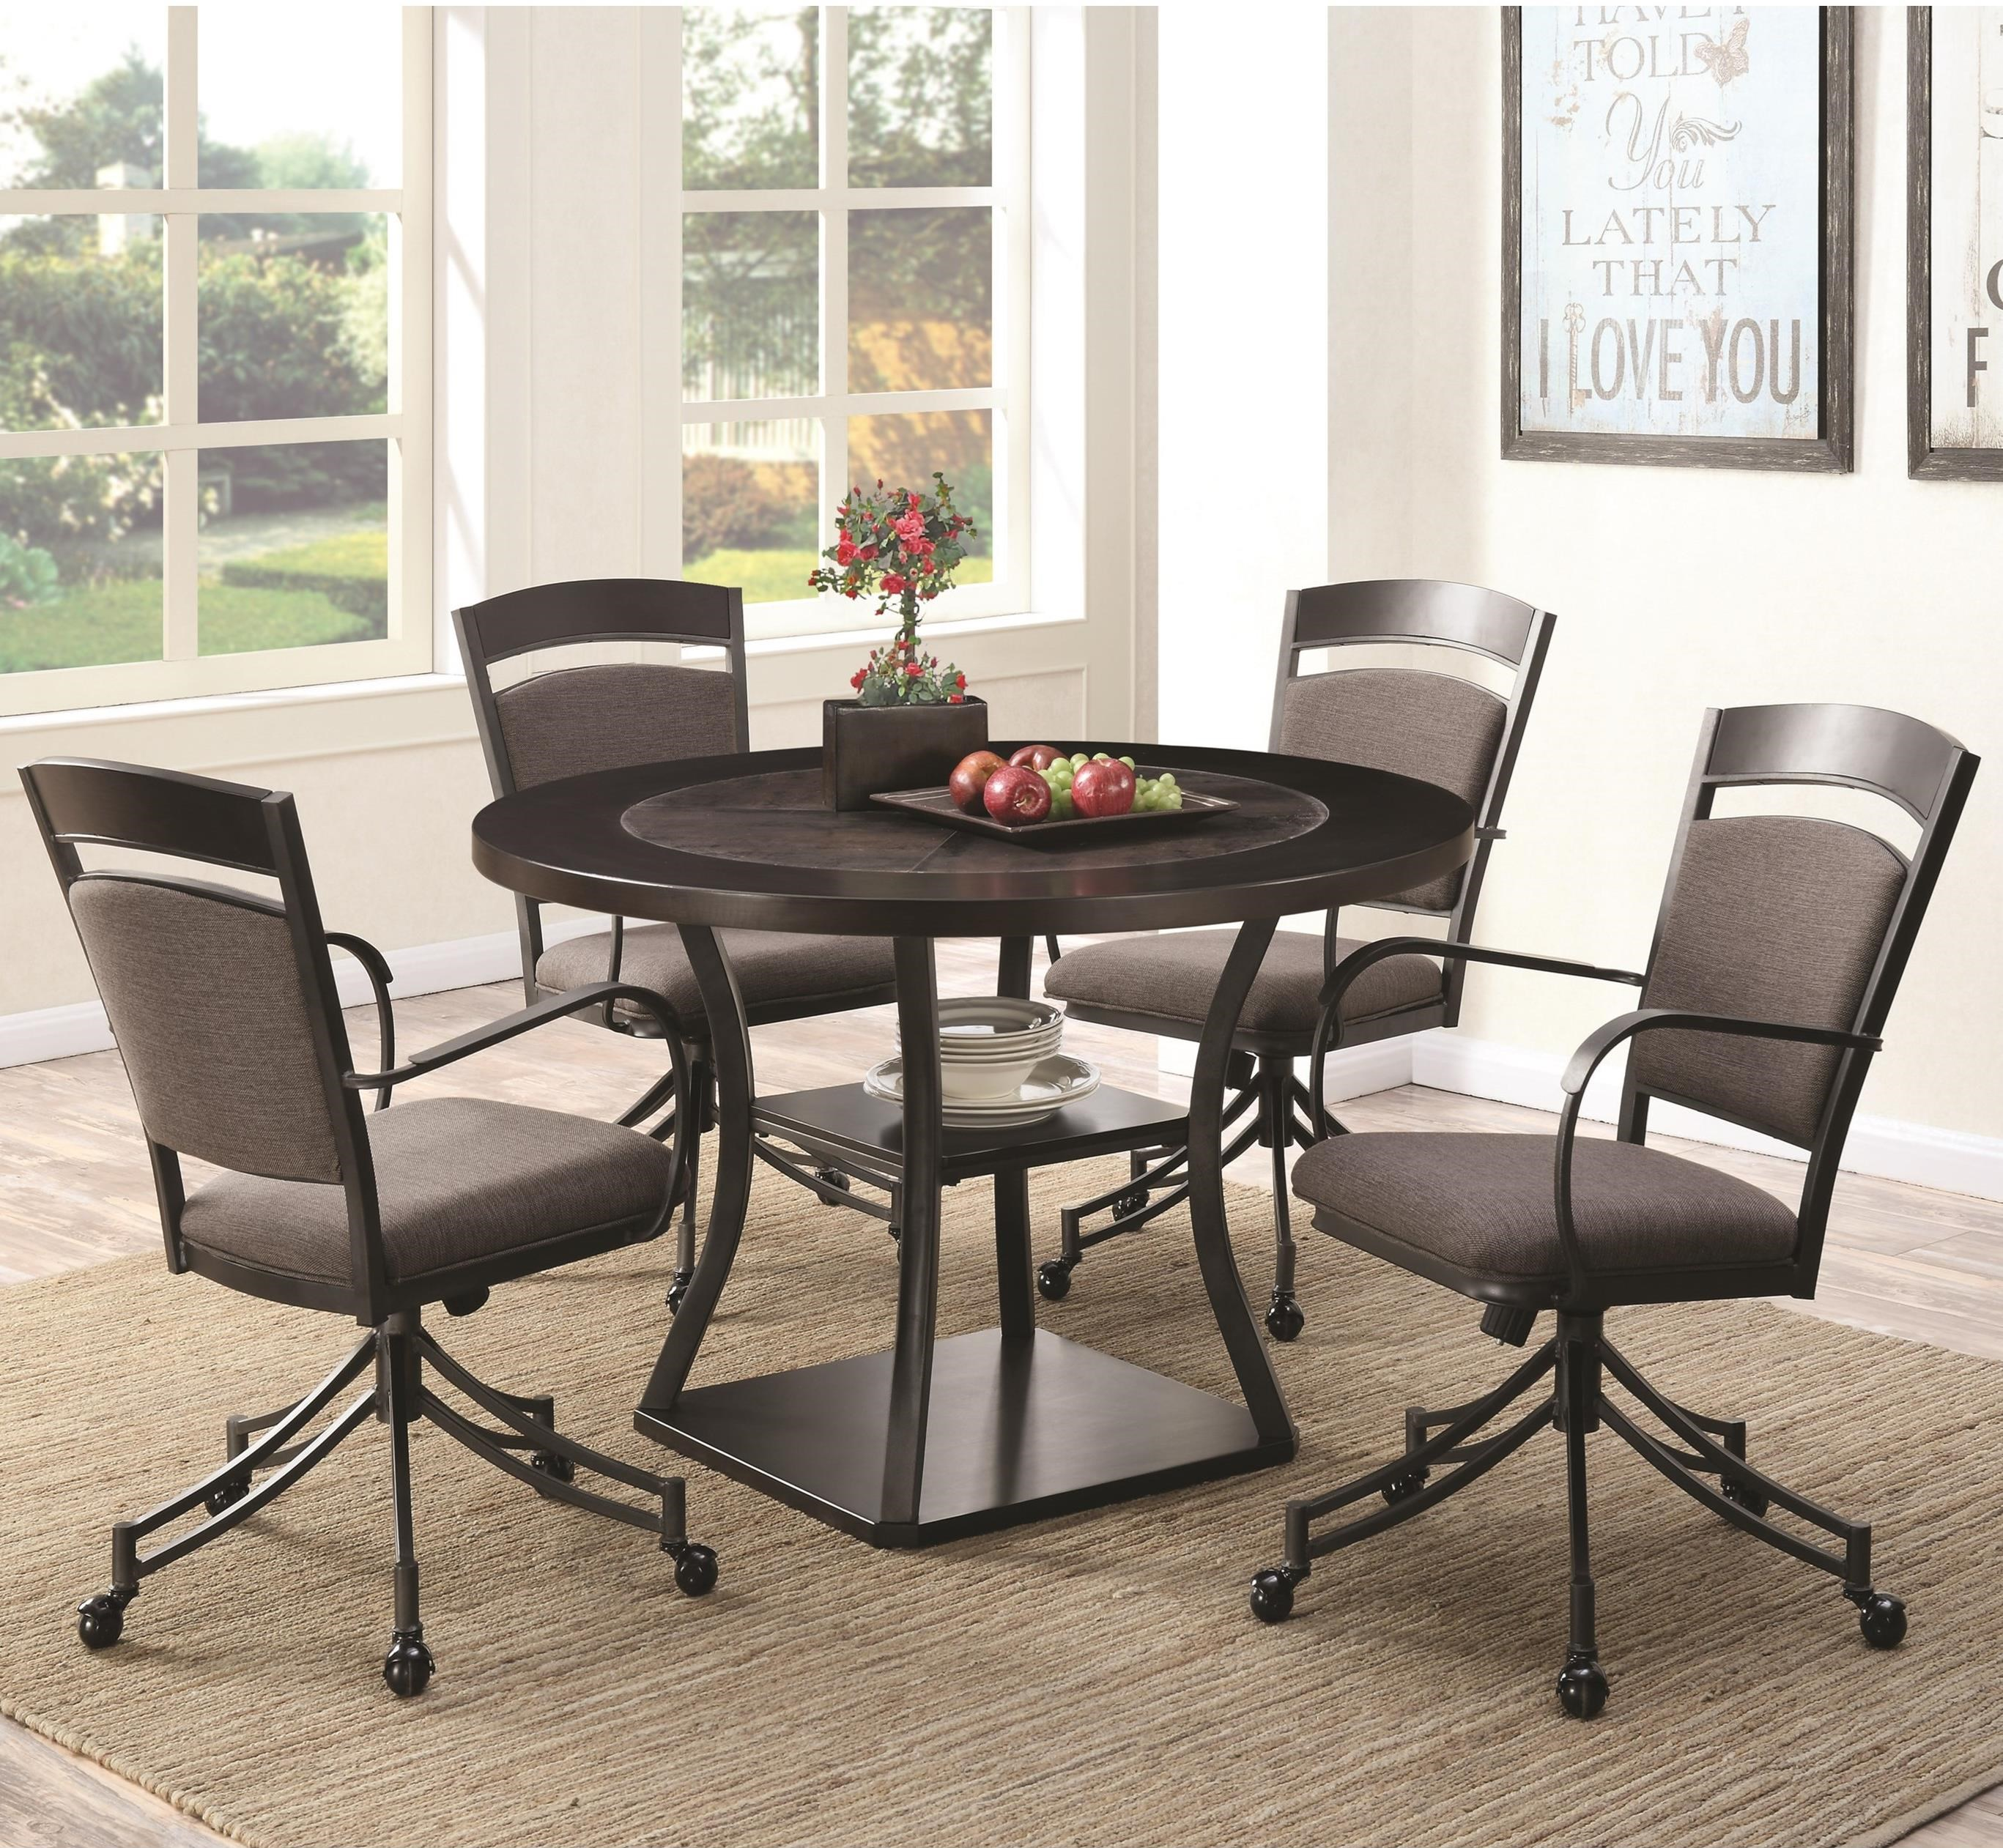 Coaster Ferdinand 5 Piece Round Table & Chair Set - Item Number: 105640+4x105642